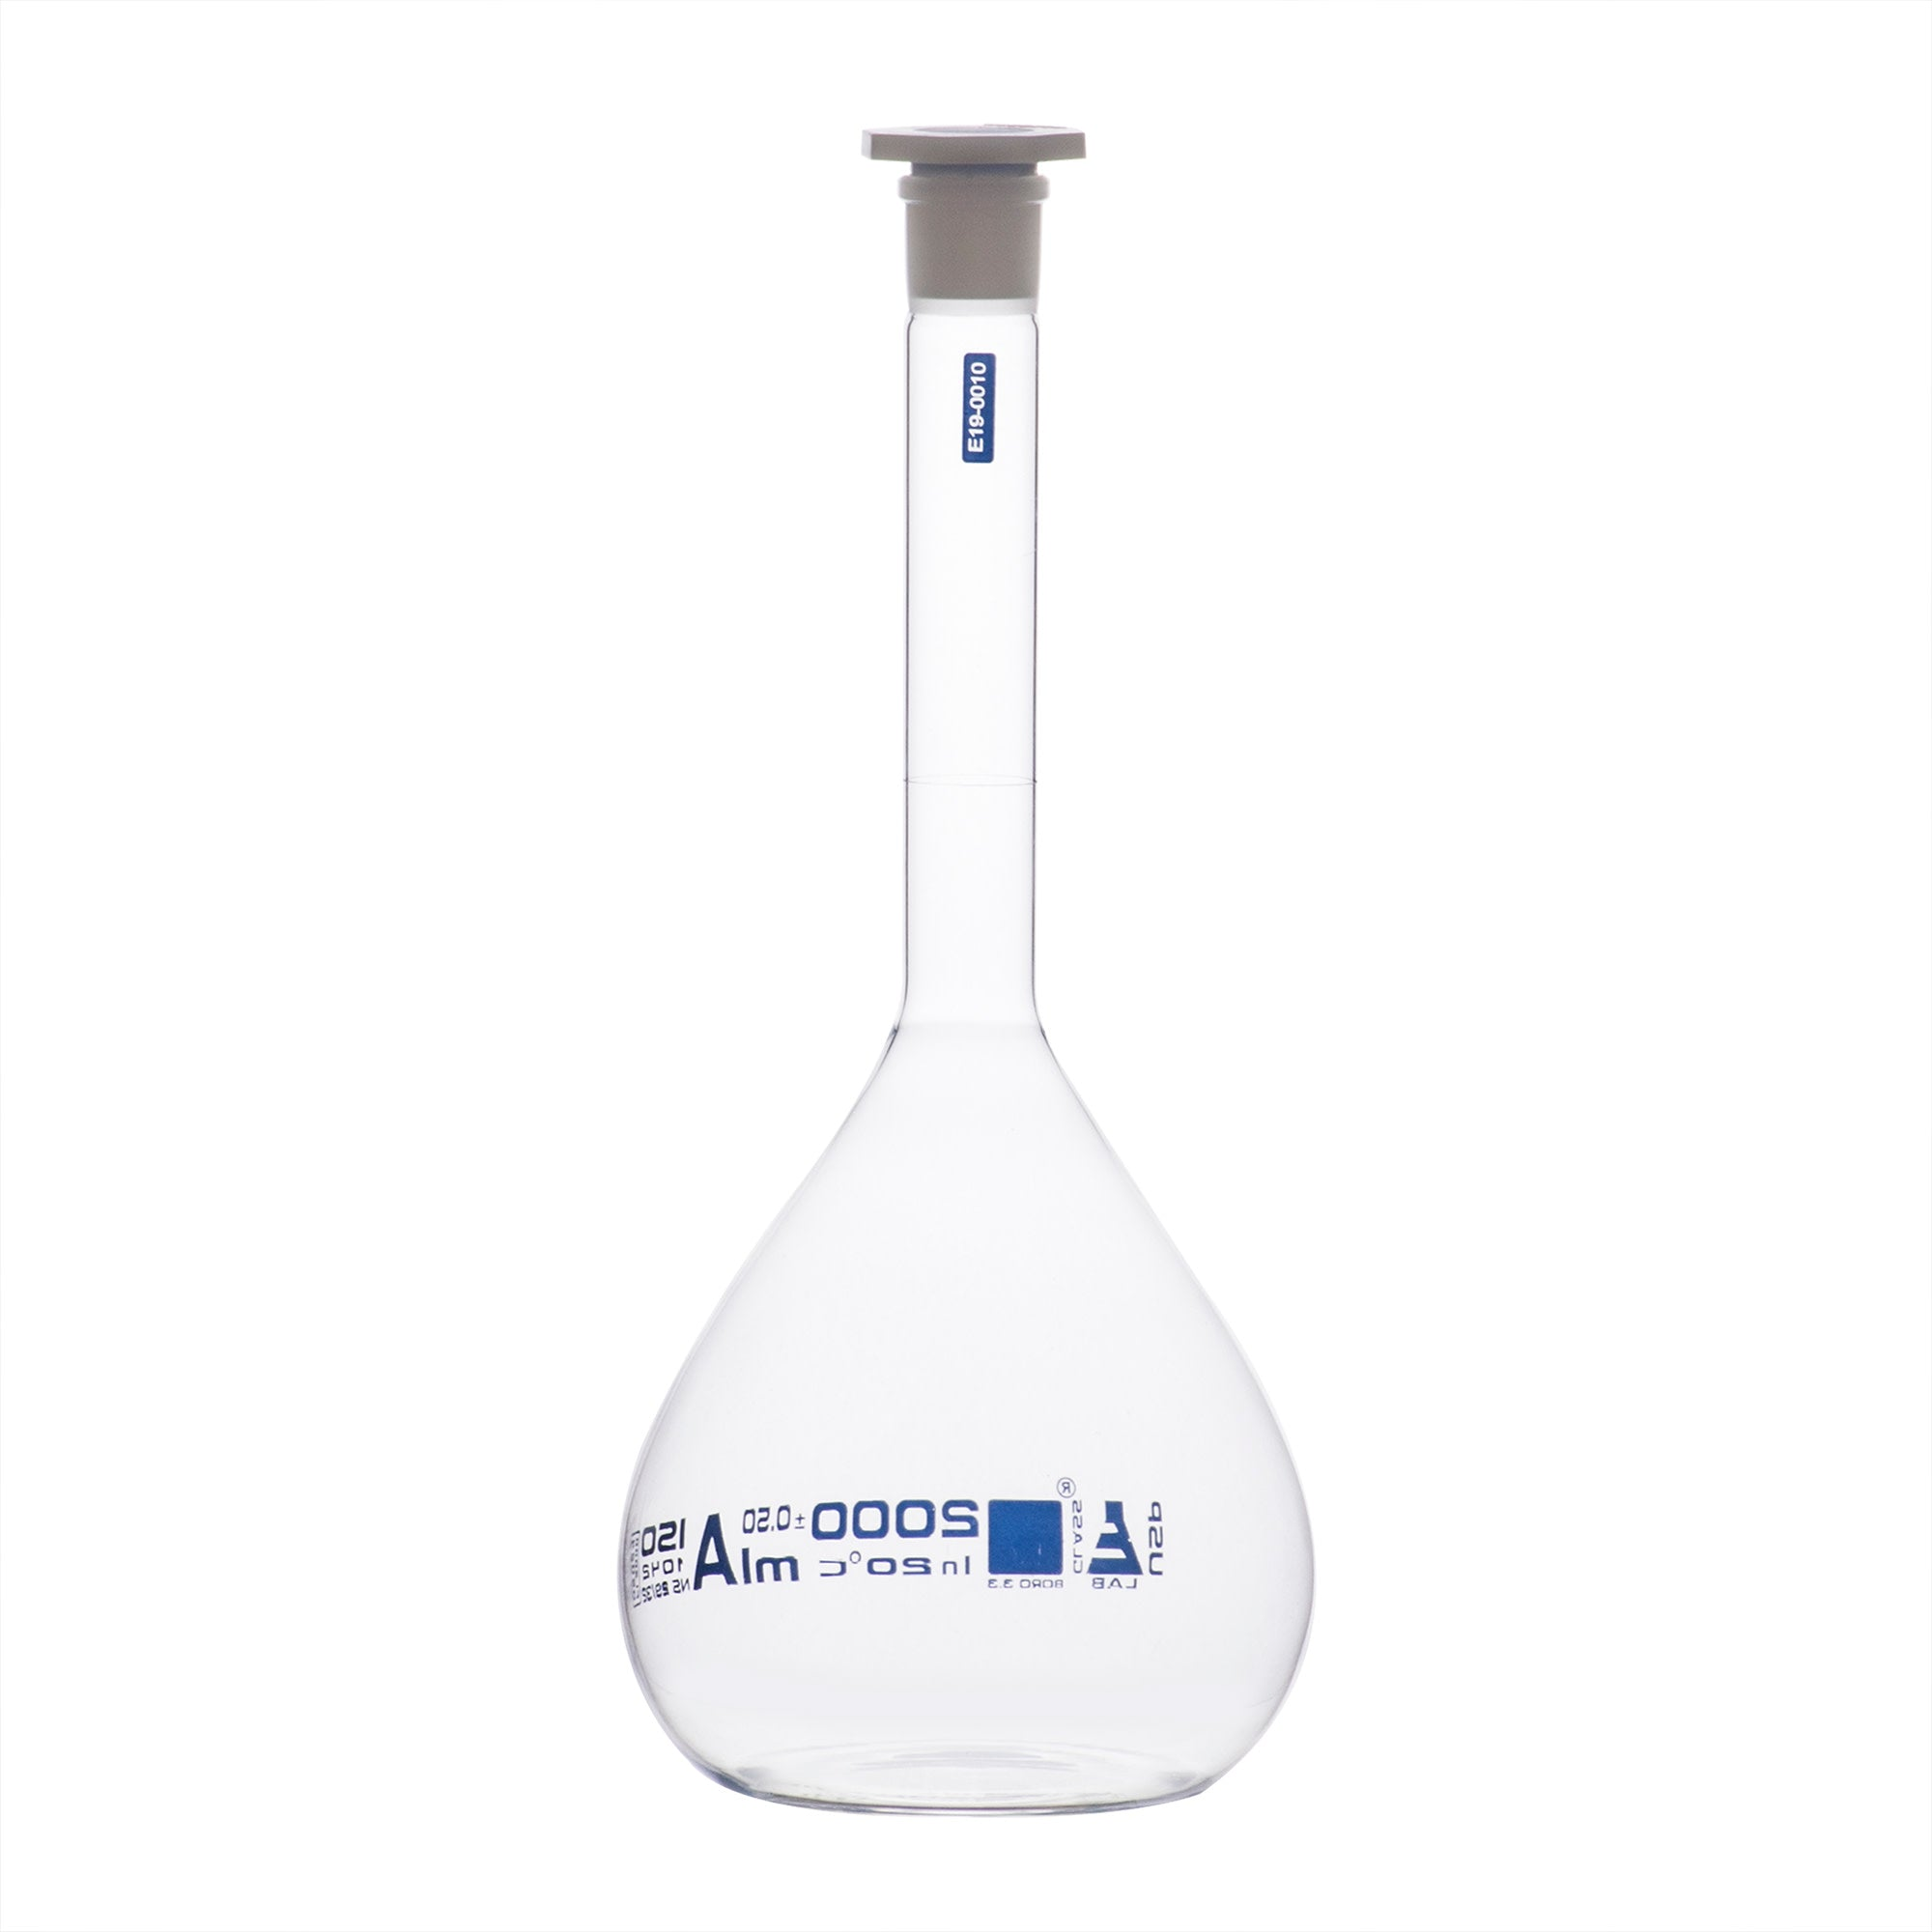 Borosilicate Glass Volumetric Flask with Solid Glass Stopper, 2000 ml, USP Class A with Individual Work Certificate,  Pack of 2, Autoclavable